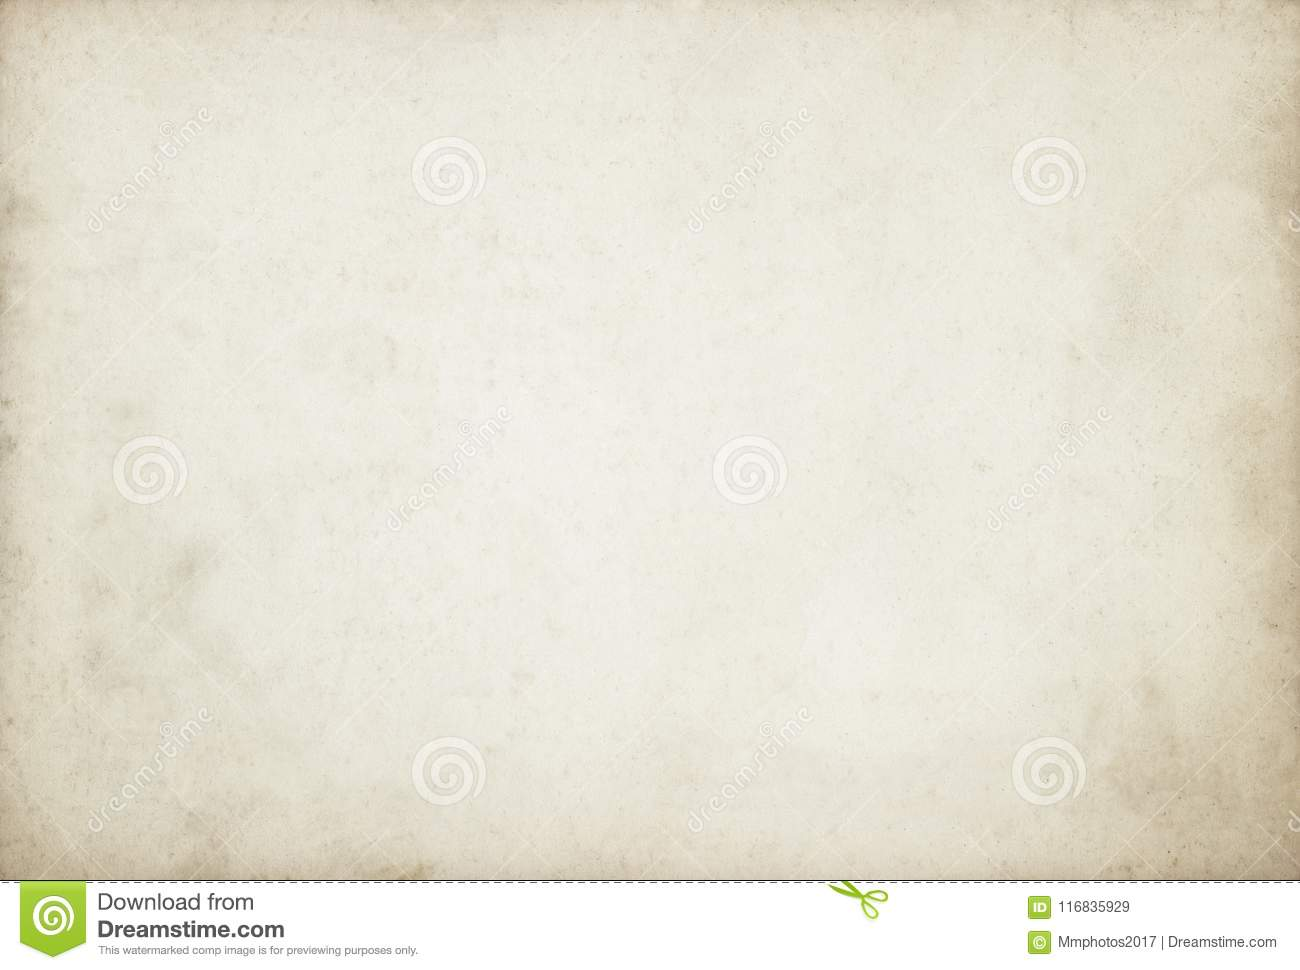 Old Paper Texture Background Stock Image - Image of